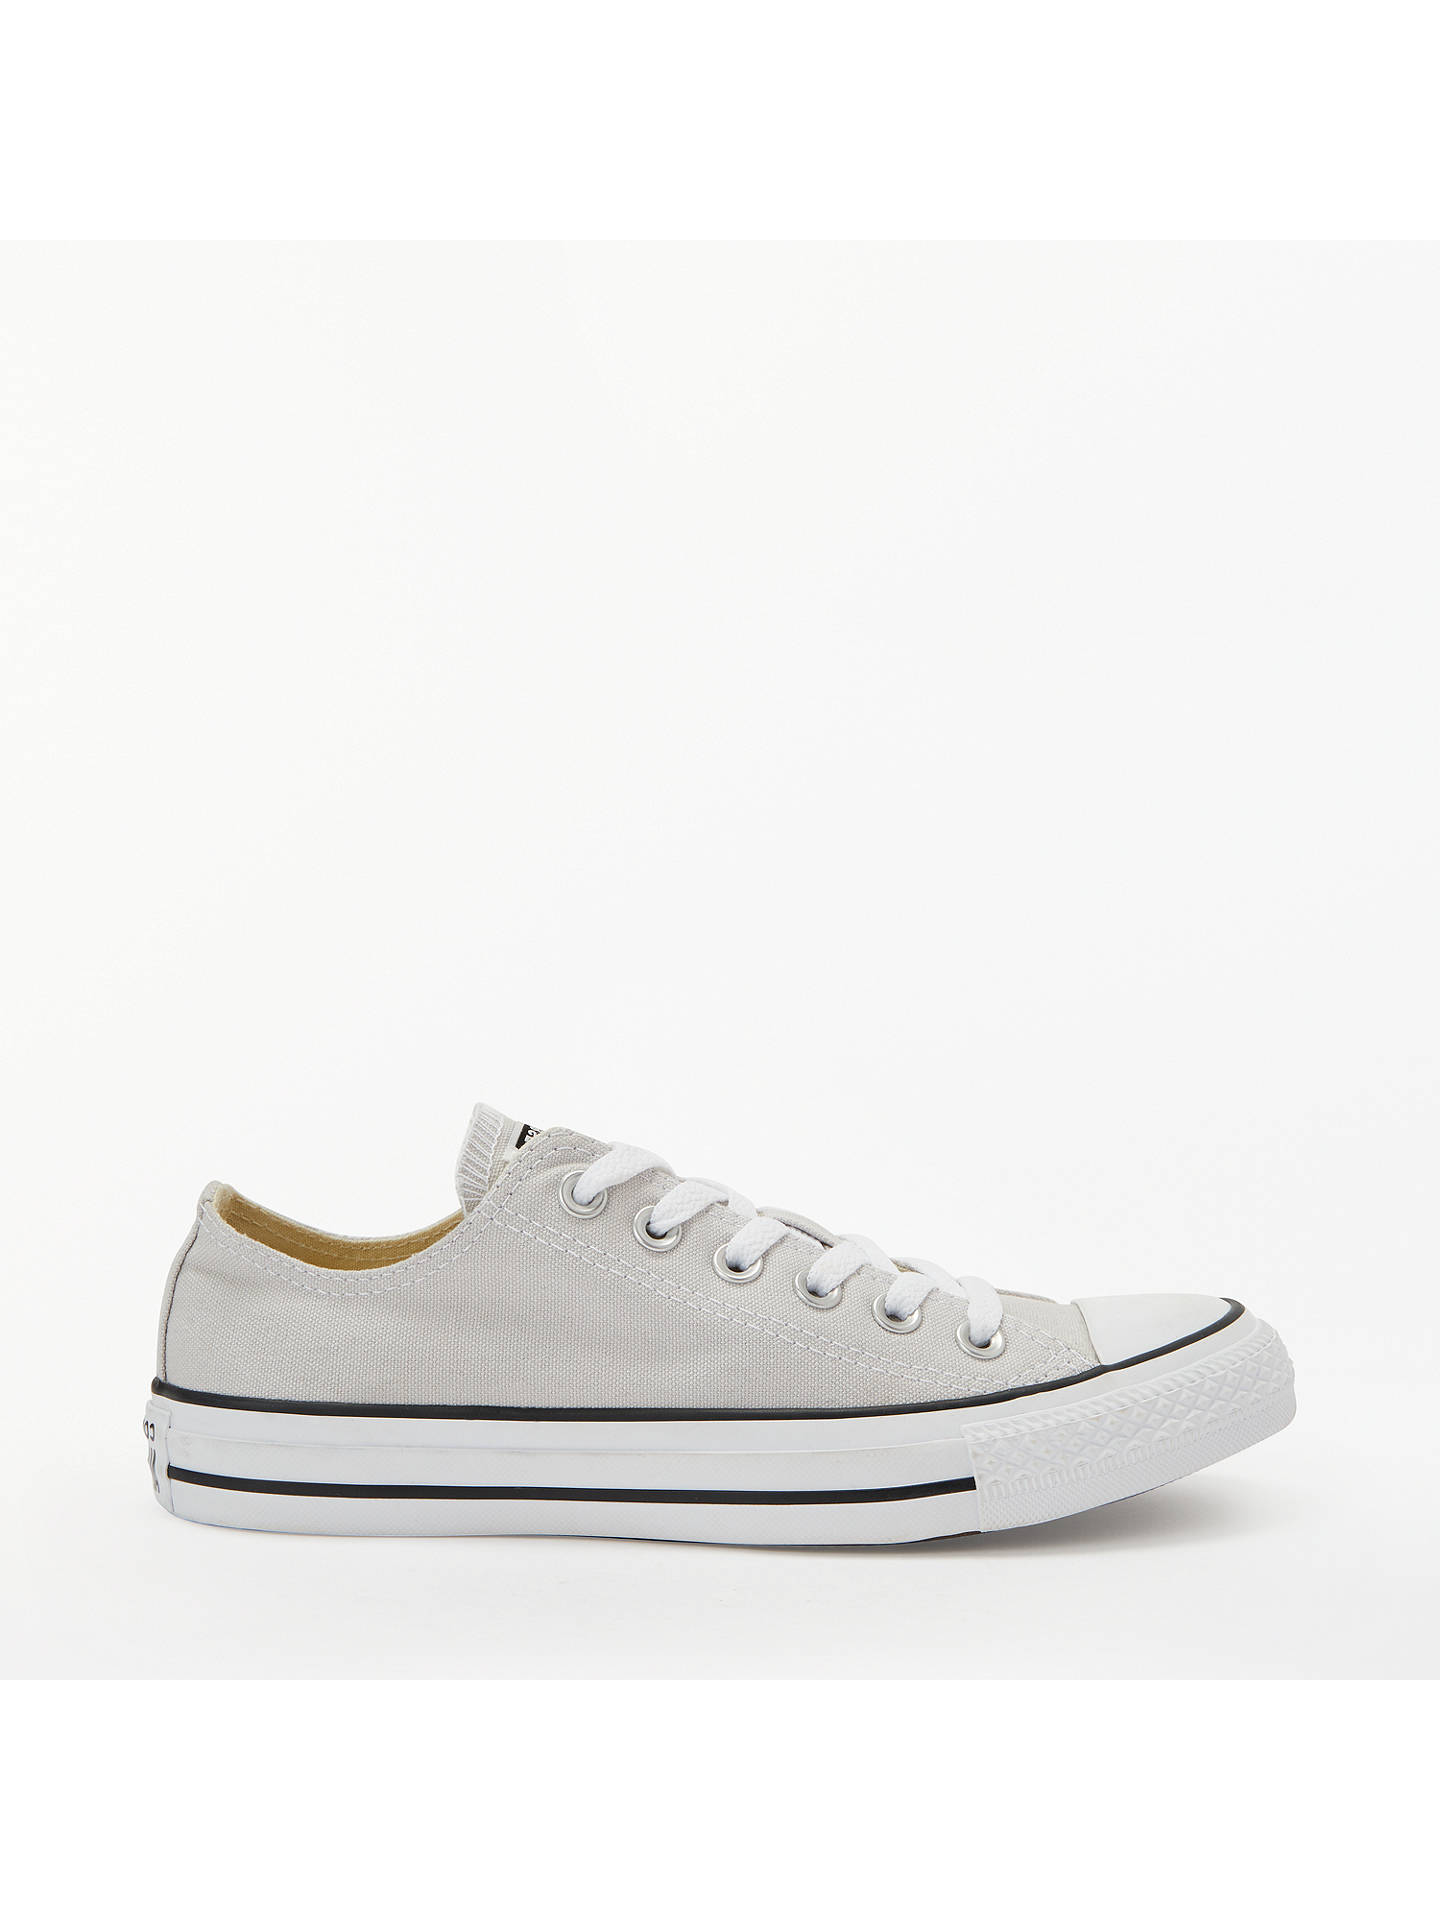 d39a623ceb6 Converse Chuck Taylor All Star Women s Canvas Ox Low-Top Trainers ...